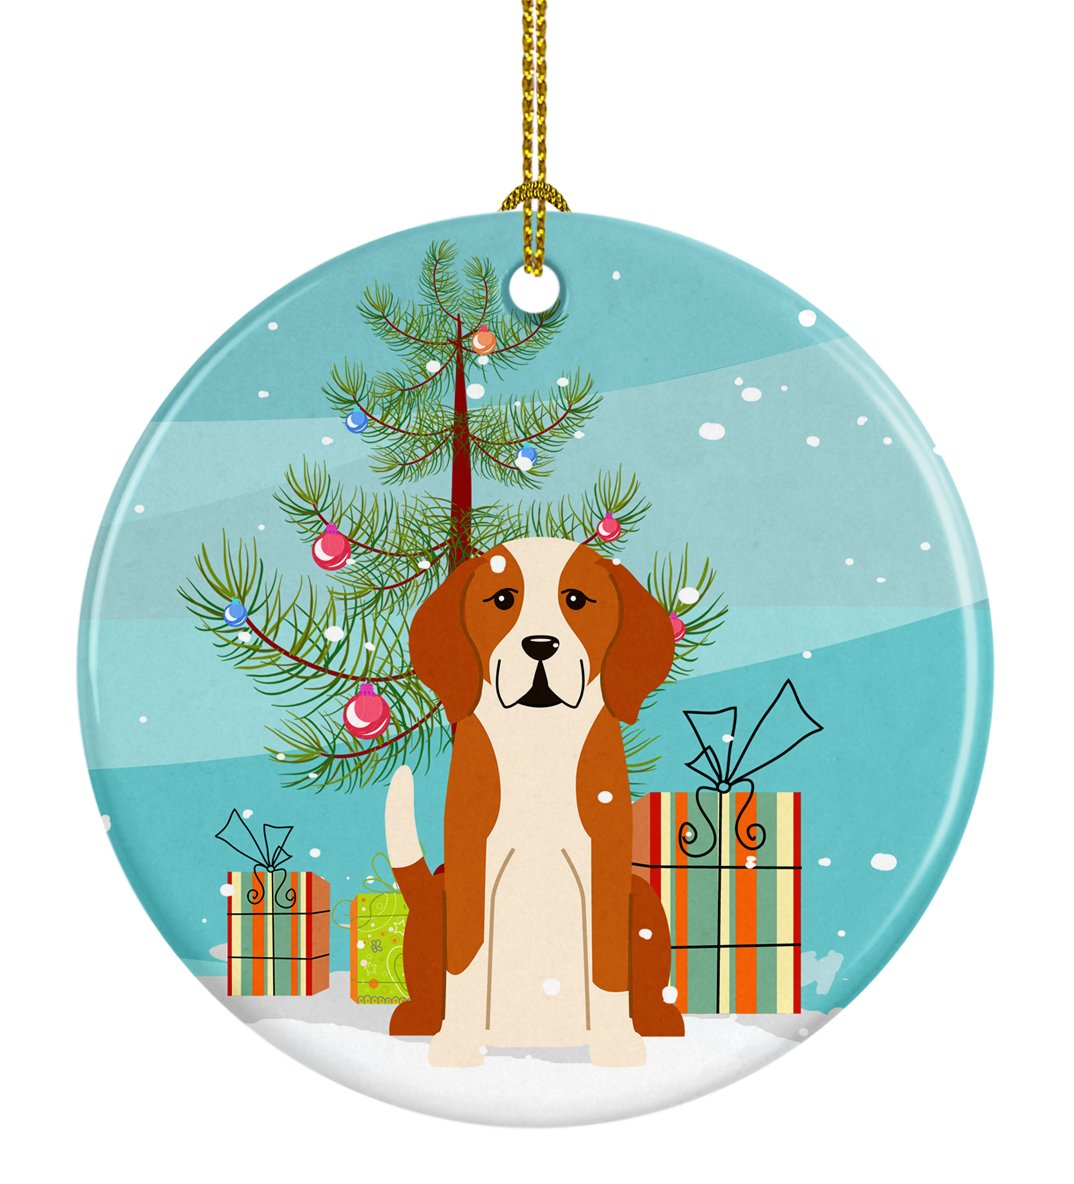 Merry Christmas Tree English Foxhound Ceramic Ornament BB4235CO1 by Caroline's Treasures